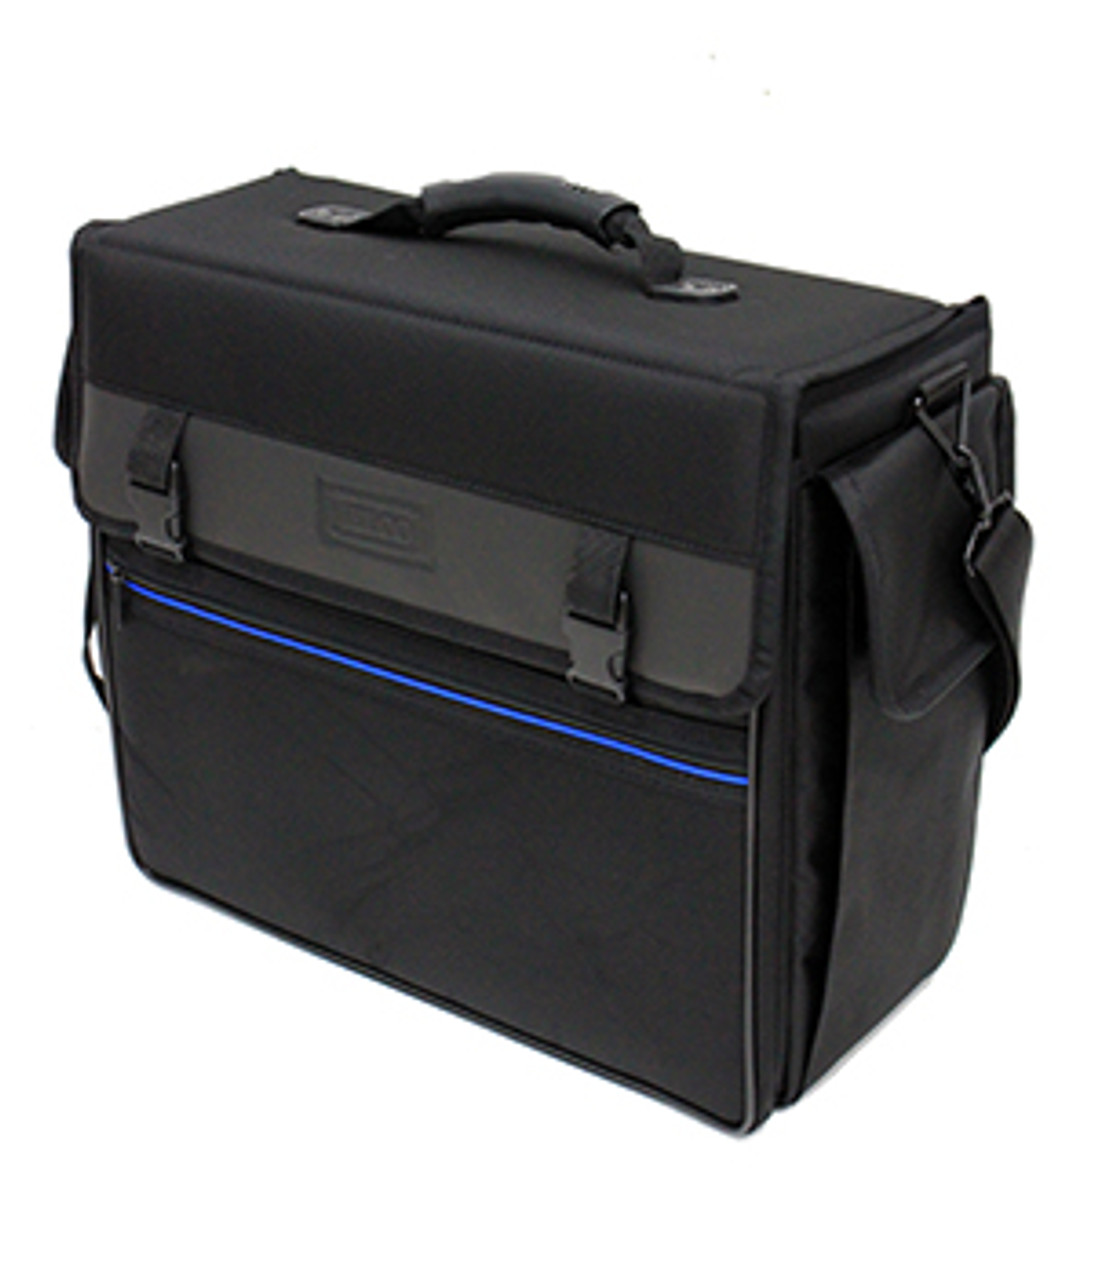 JEL-616CB: Padded Carry Bag for Projector,  Laptop and Accessories